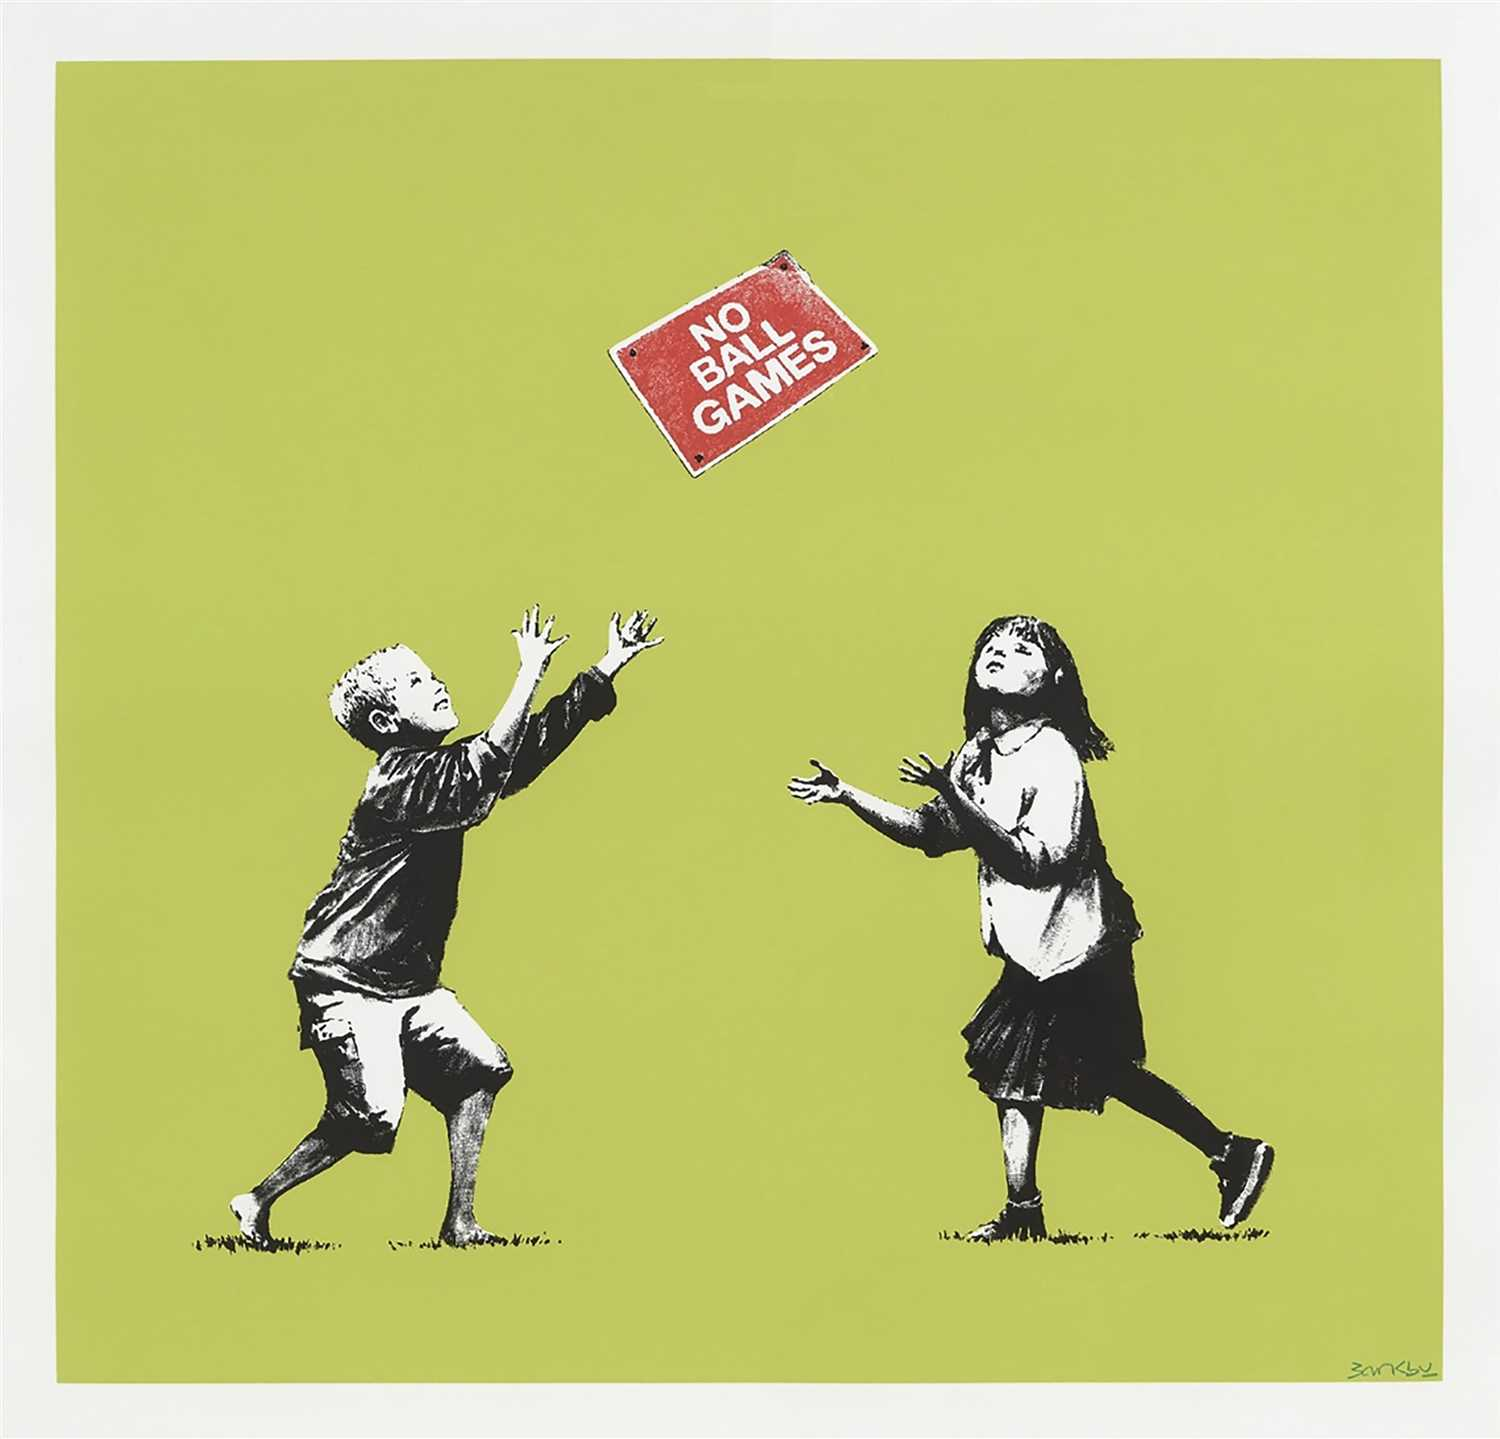 Lot 377-Banksy (British ) (B.1974). NO BALL GAMES (GREEN)